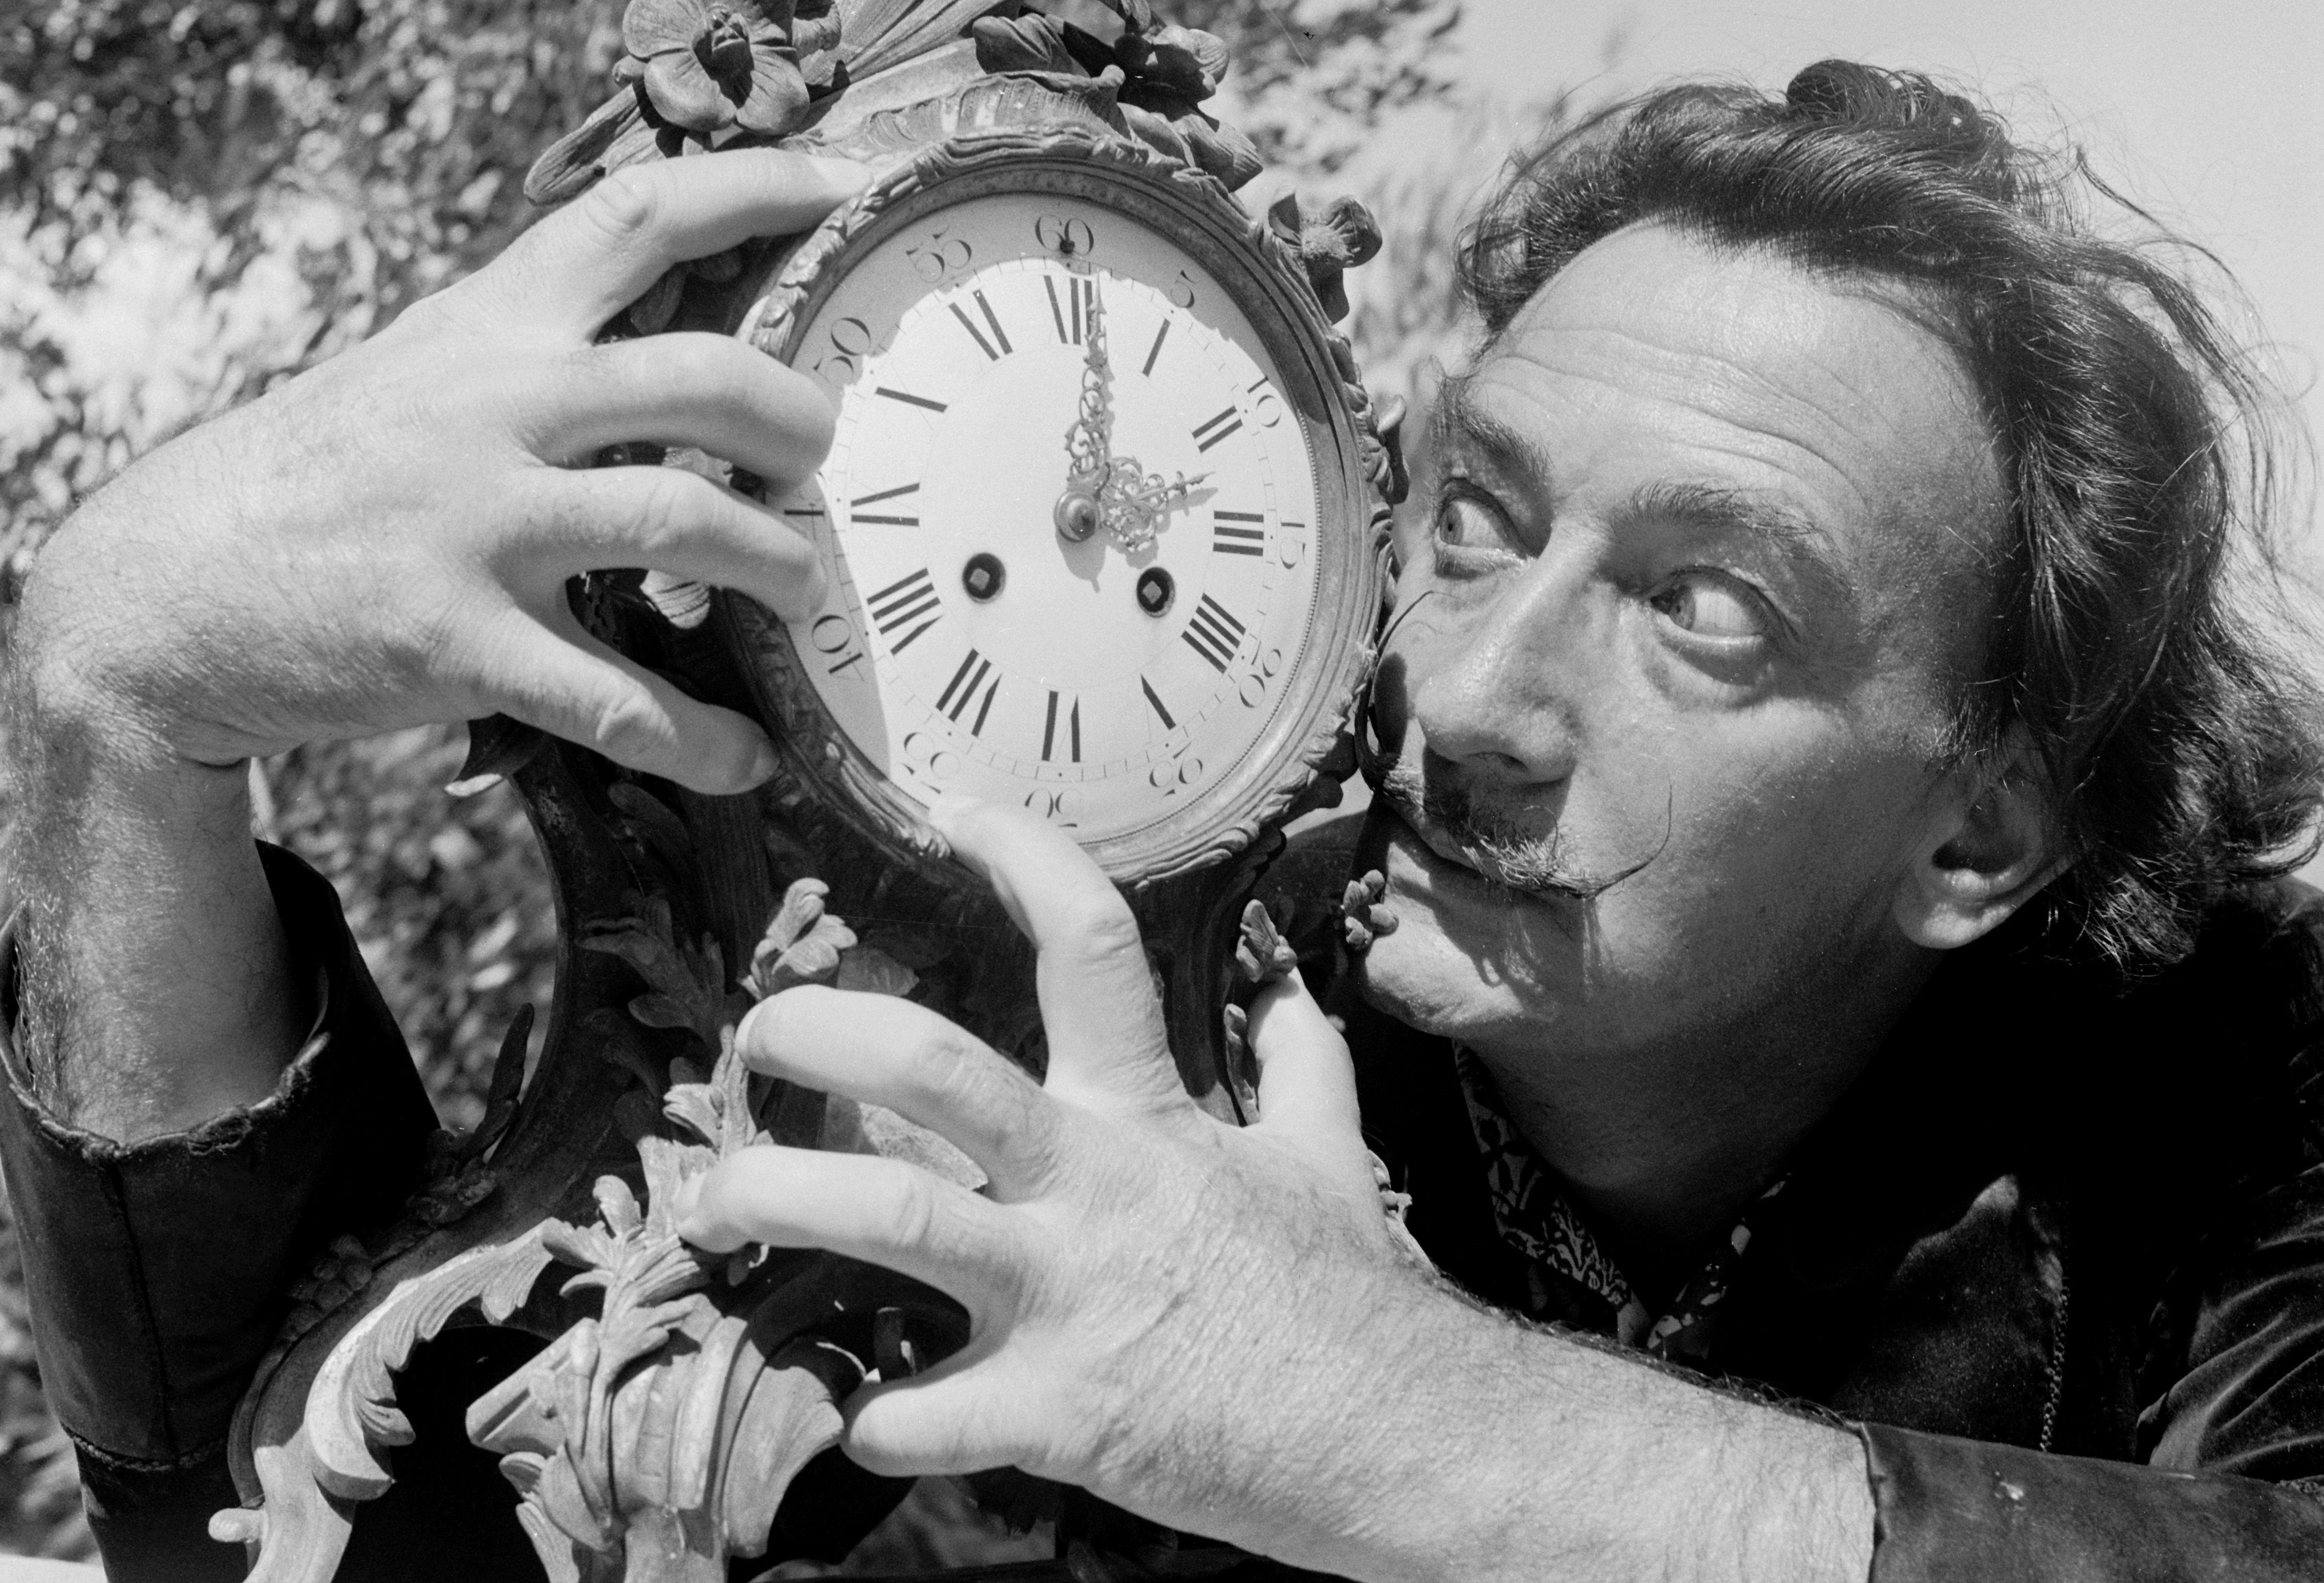 Black and white photograph of artist Salvador Dali clutching a clock